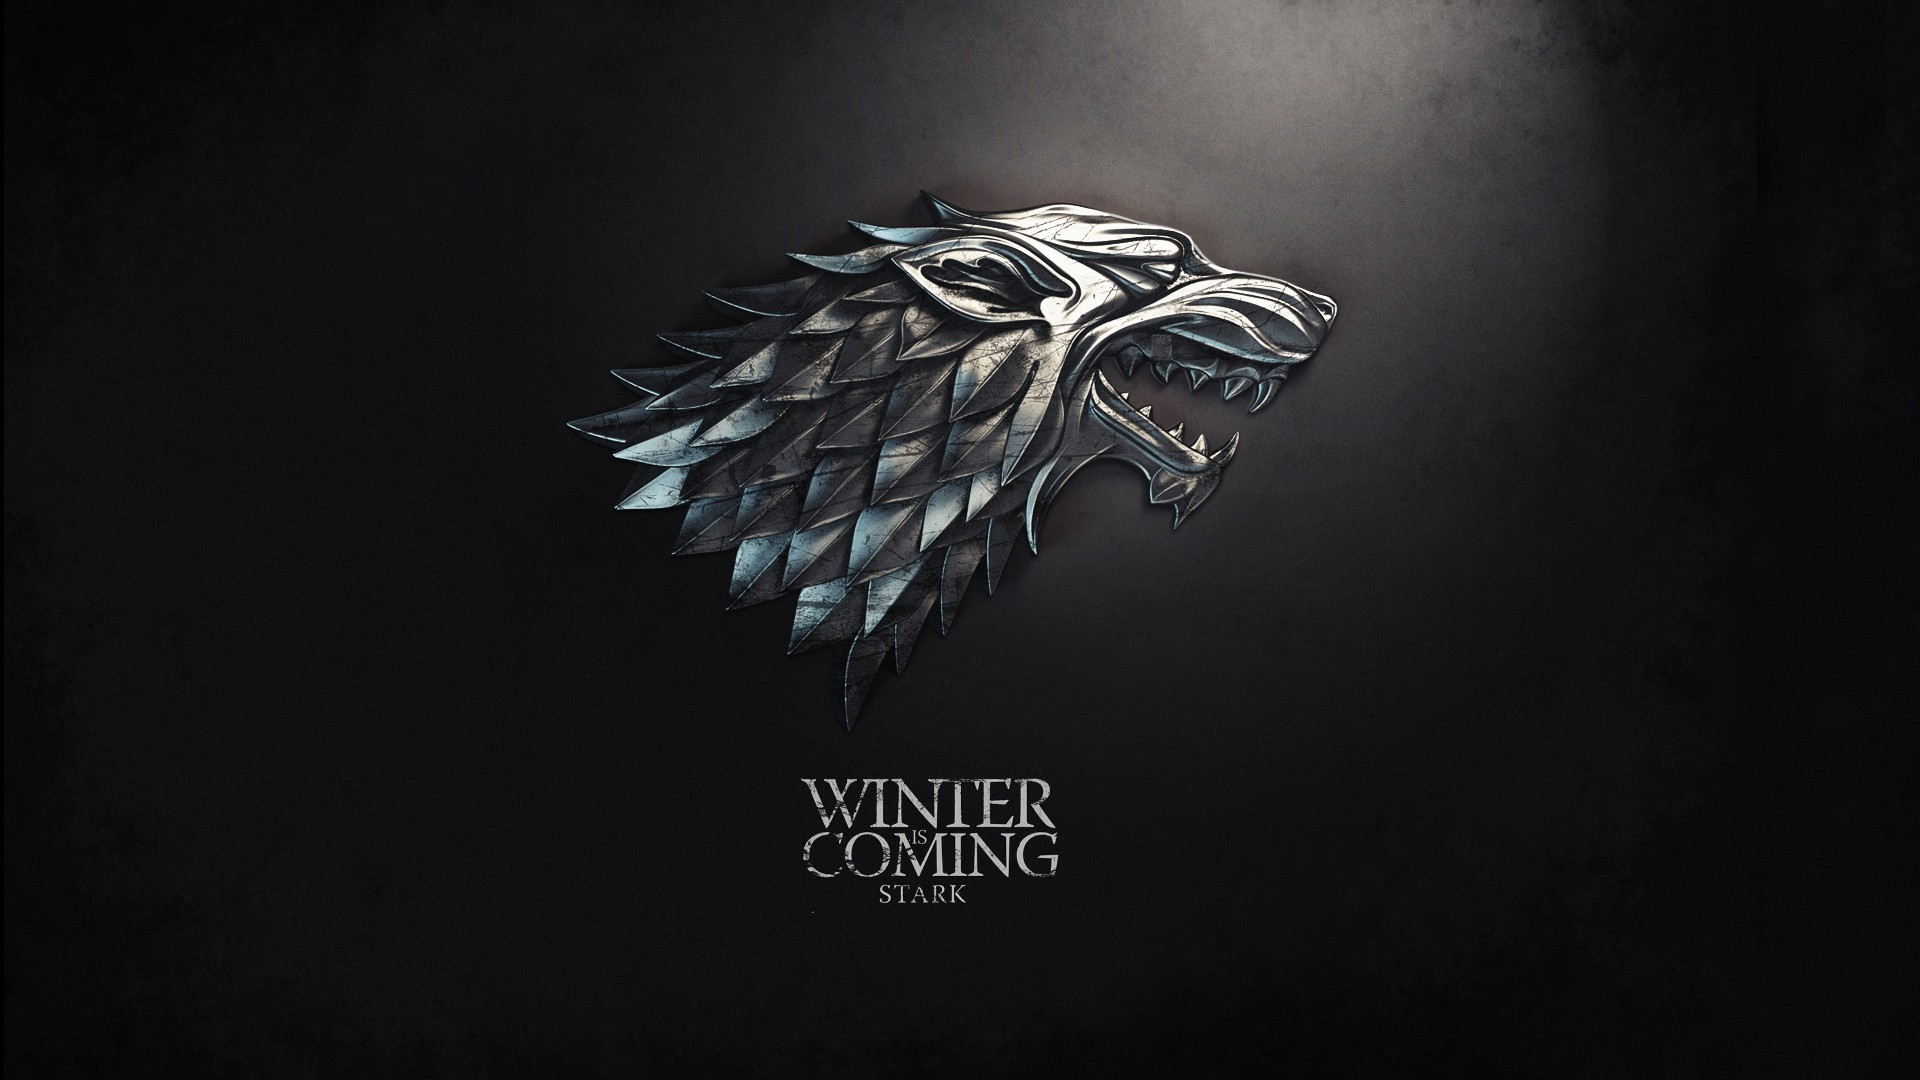 1920x1080 fantasy art Game of Thrones sigil TV series Winter is Coming direwolf HBO  George R. R. Martin